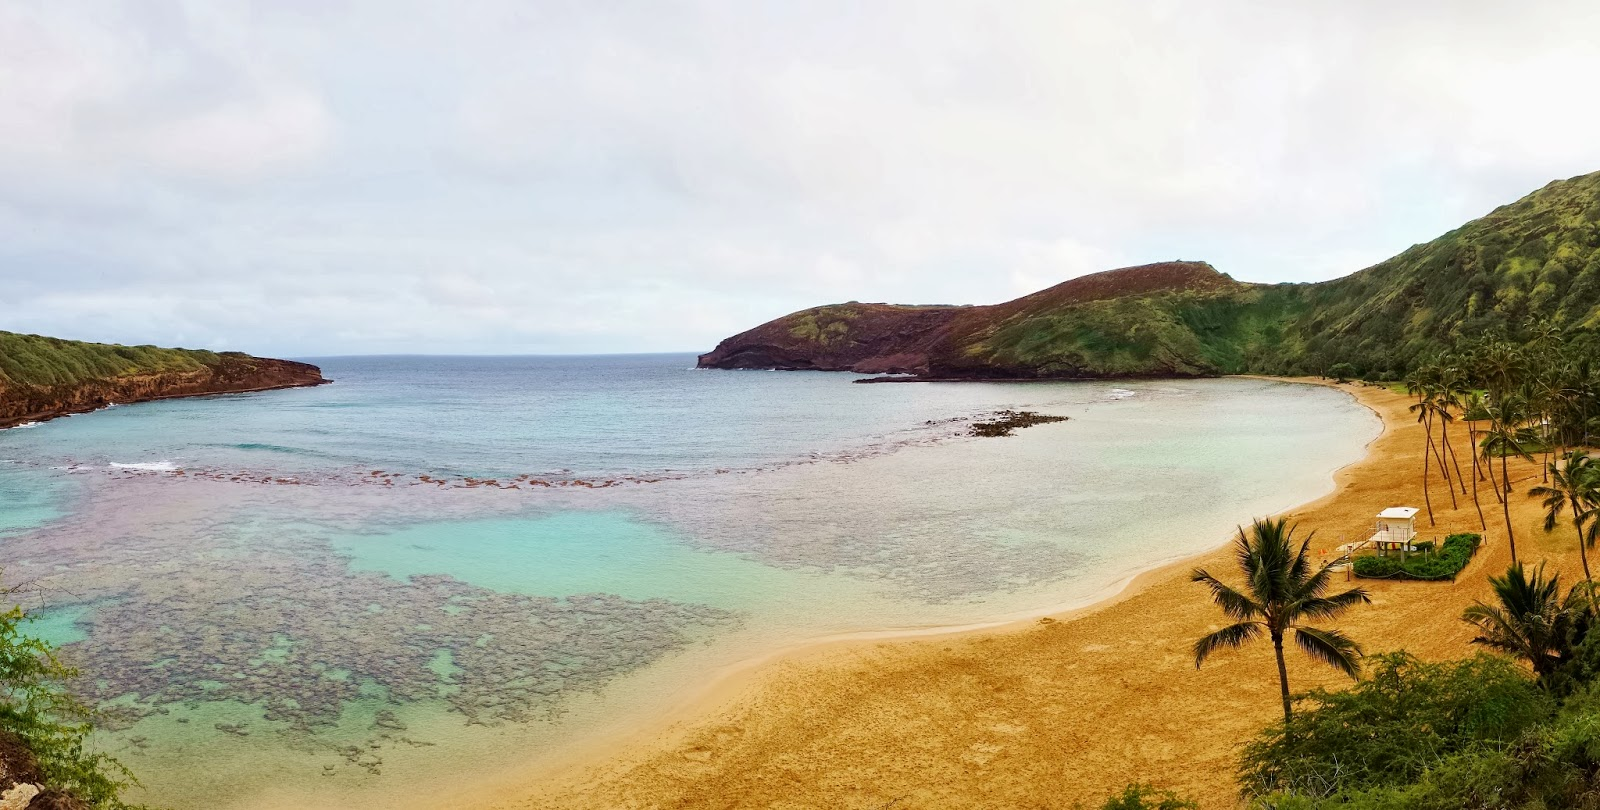 The stunning Hanauma Bay in Hawaii. Photo: Just J